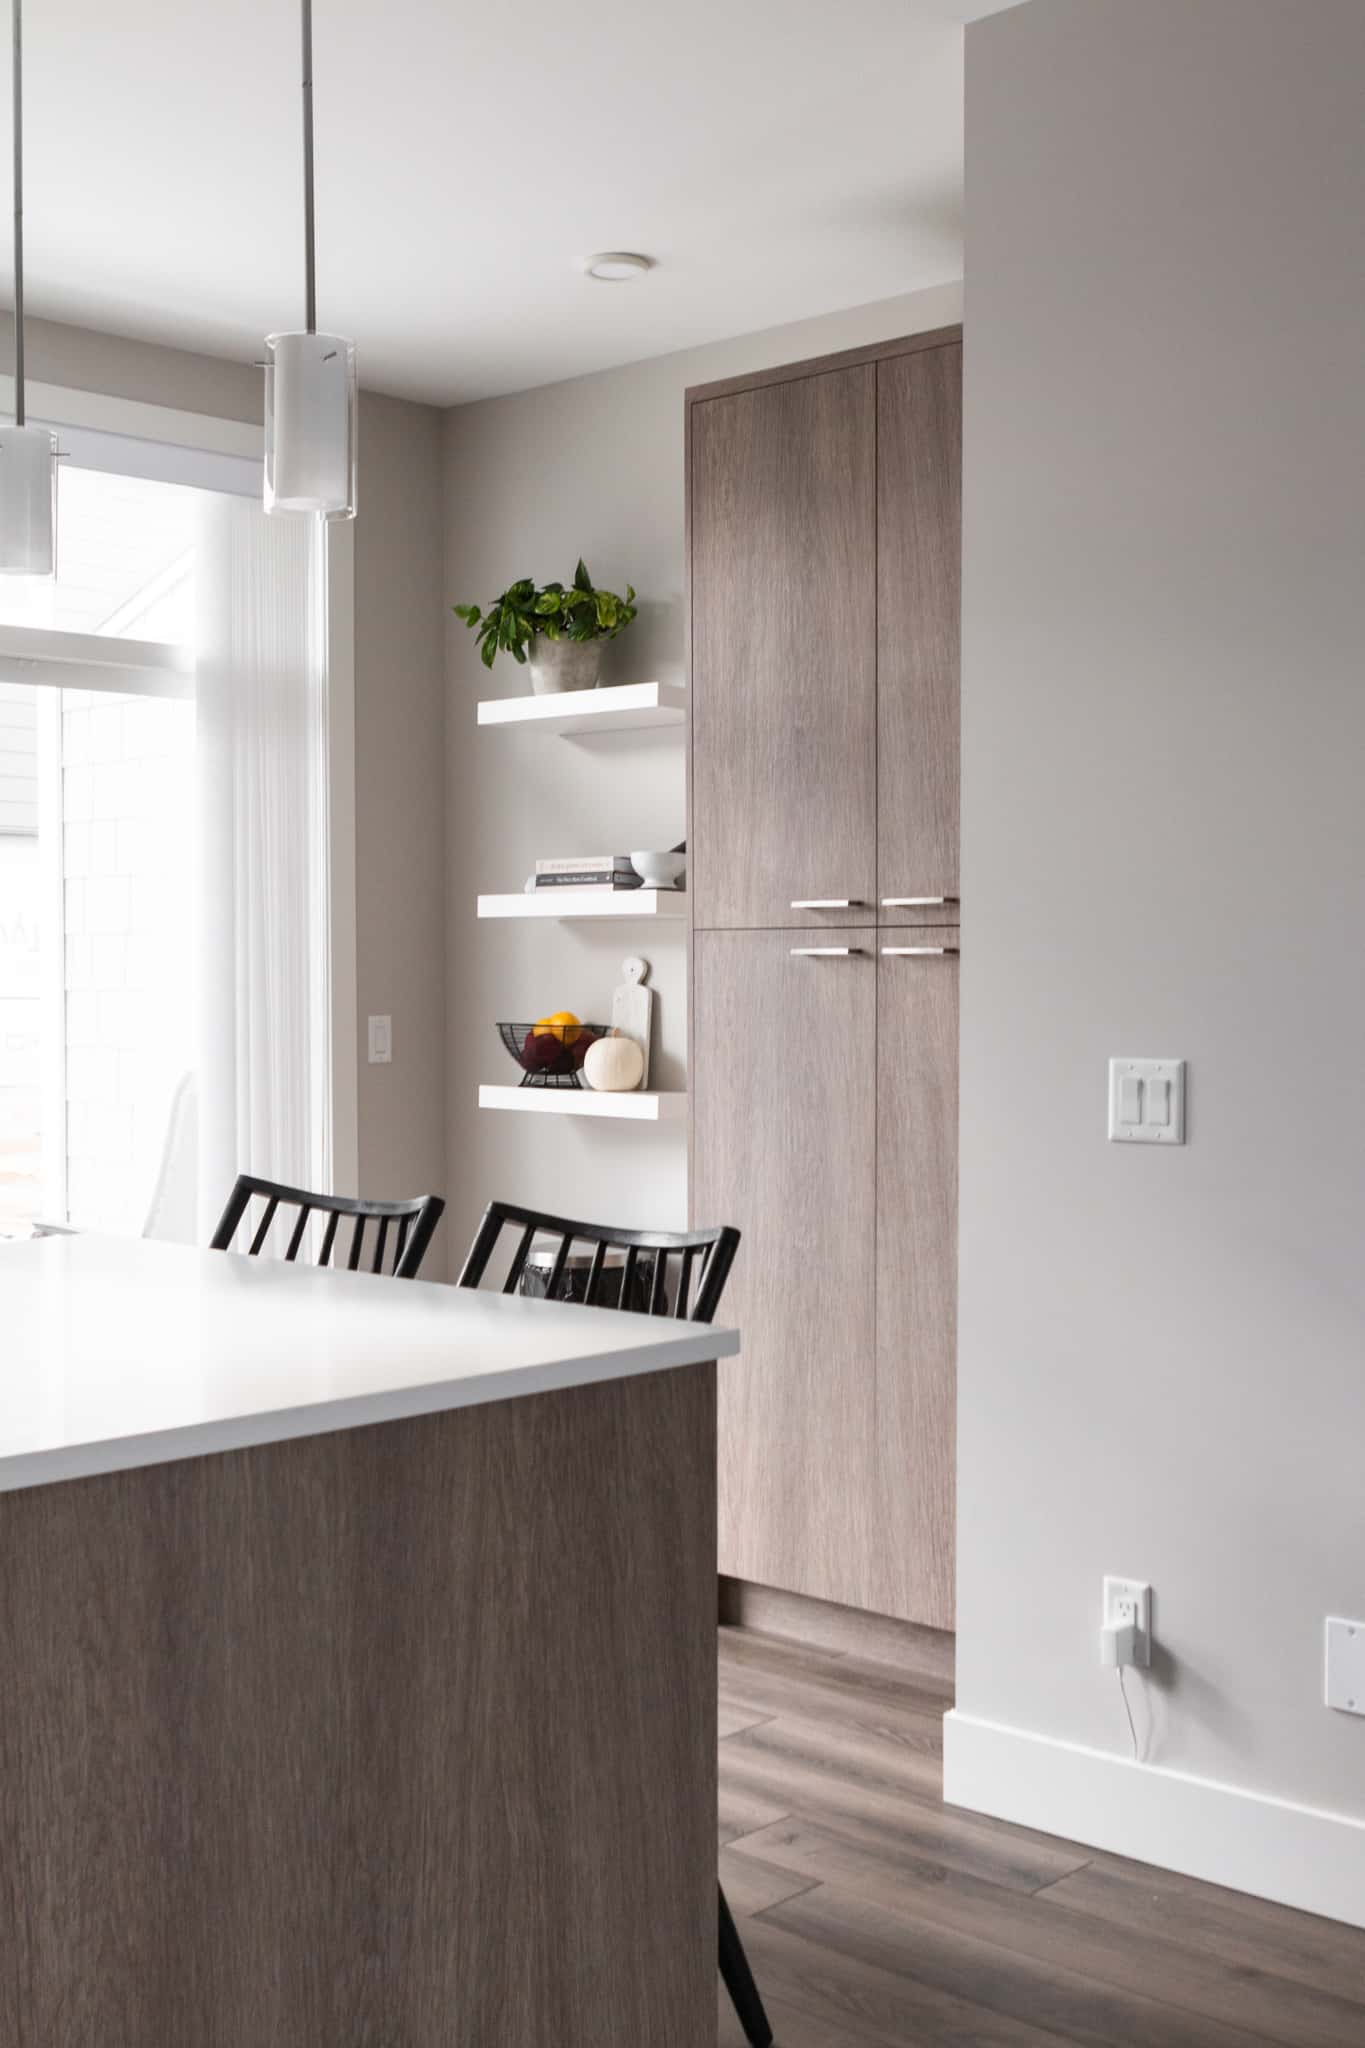 pantry and floating shelves